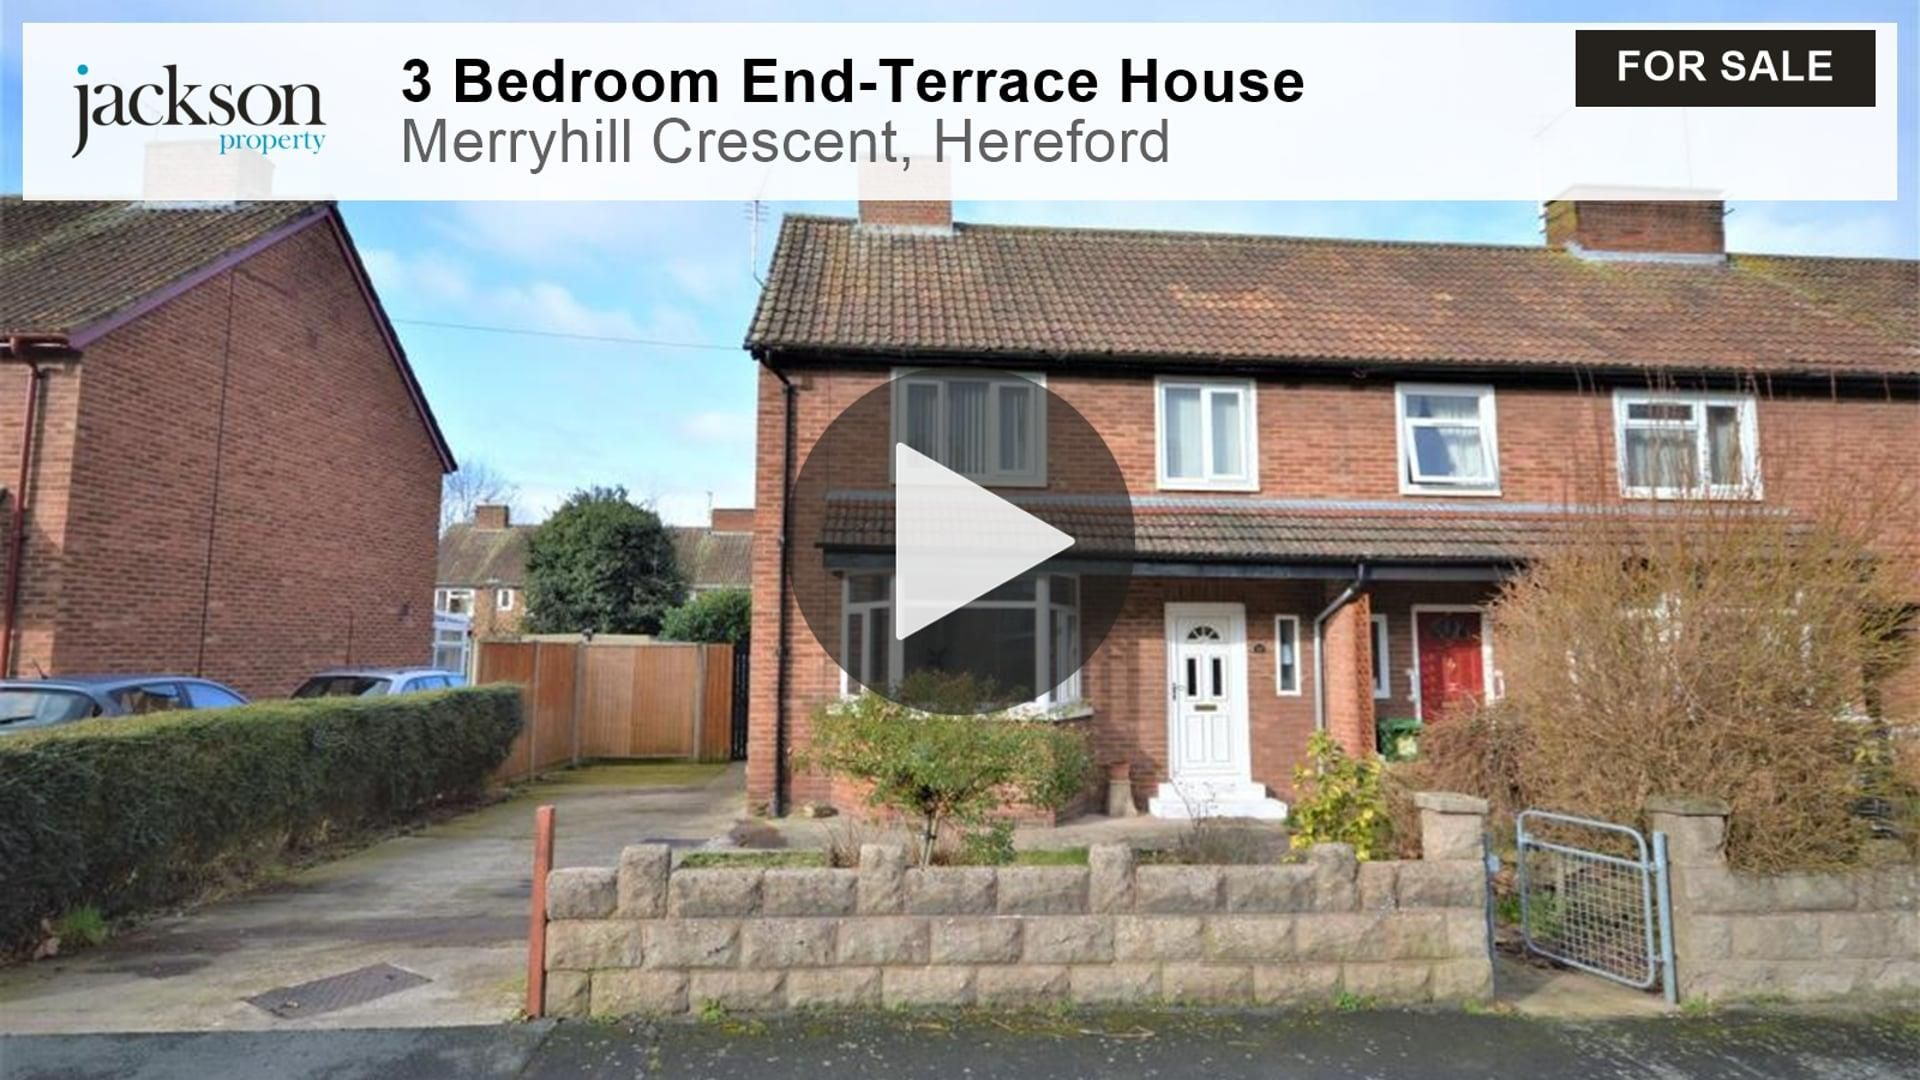 3 bed end-of-terrace for sale in Hereford 2